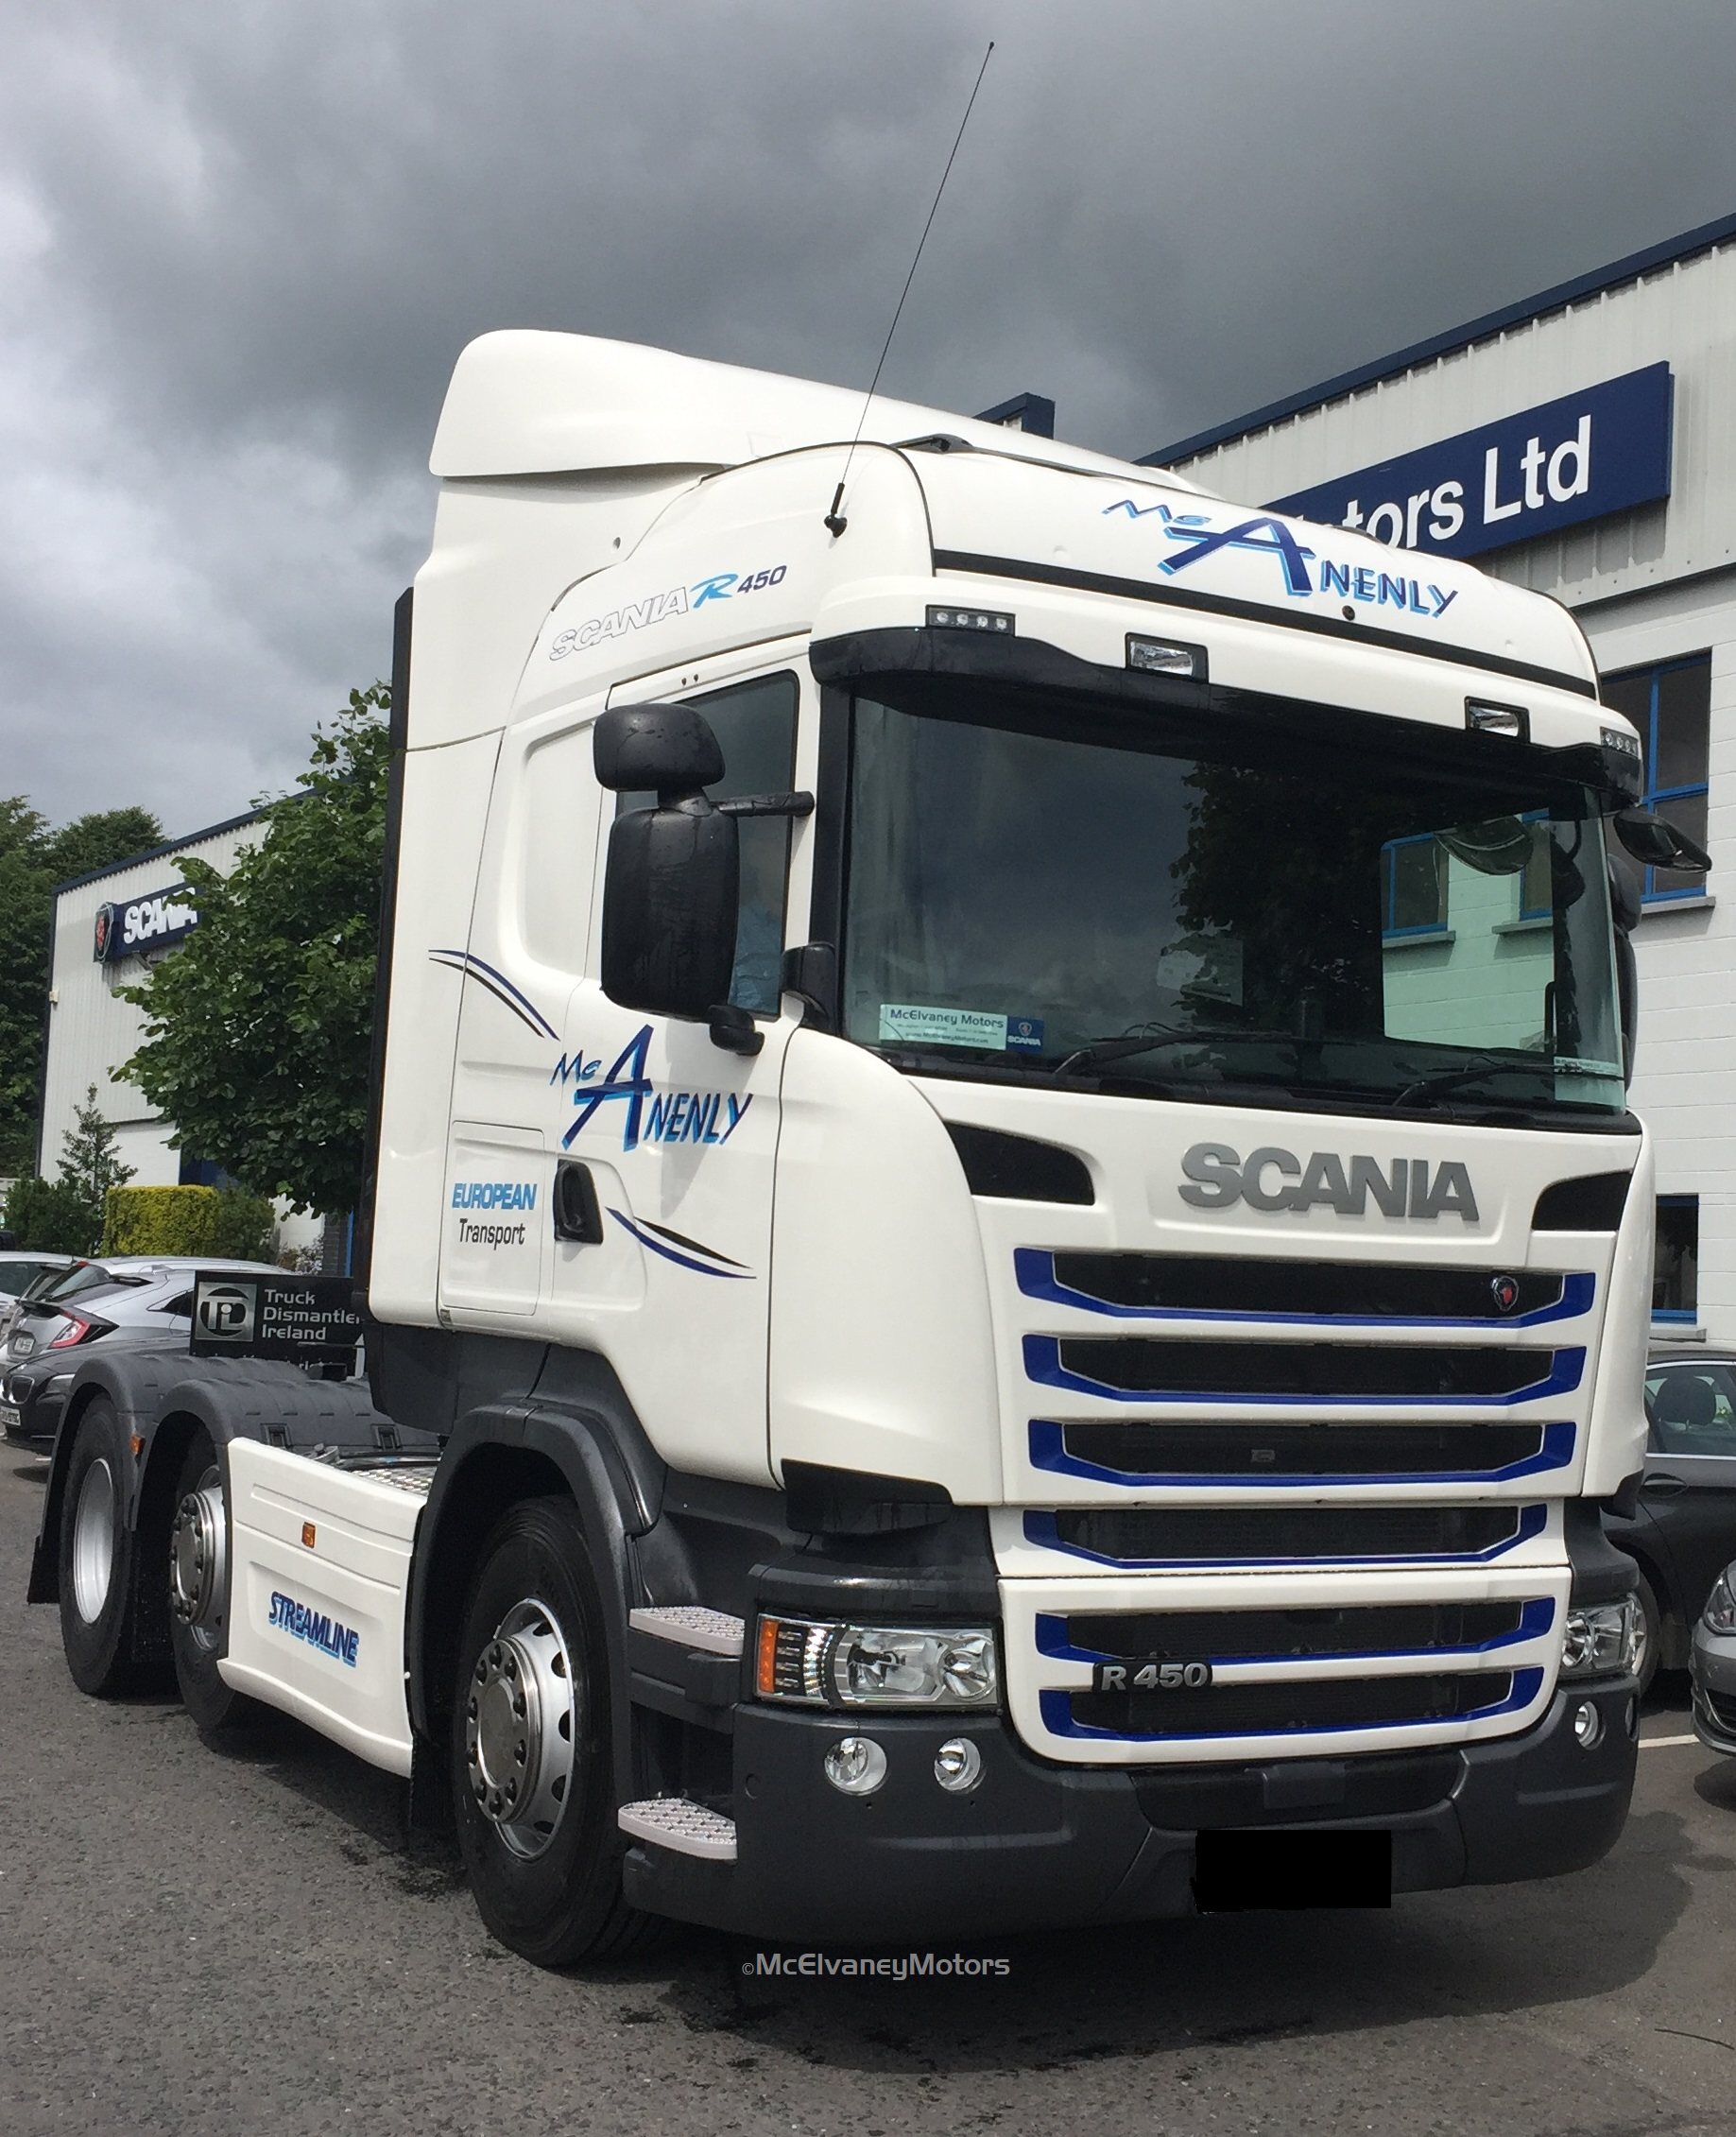 New Scania R450 for McAnenly European Transport